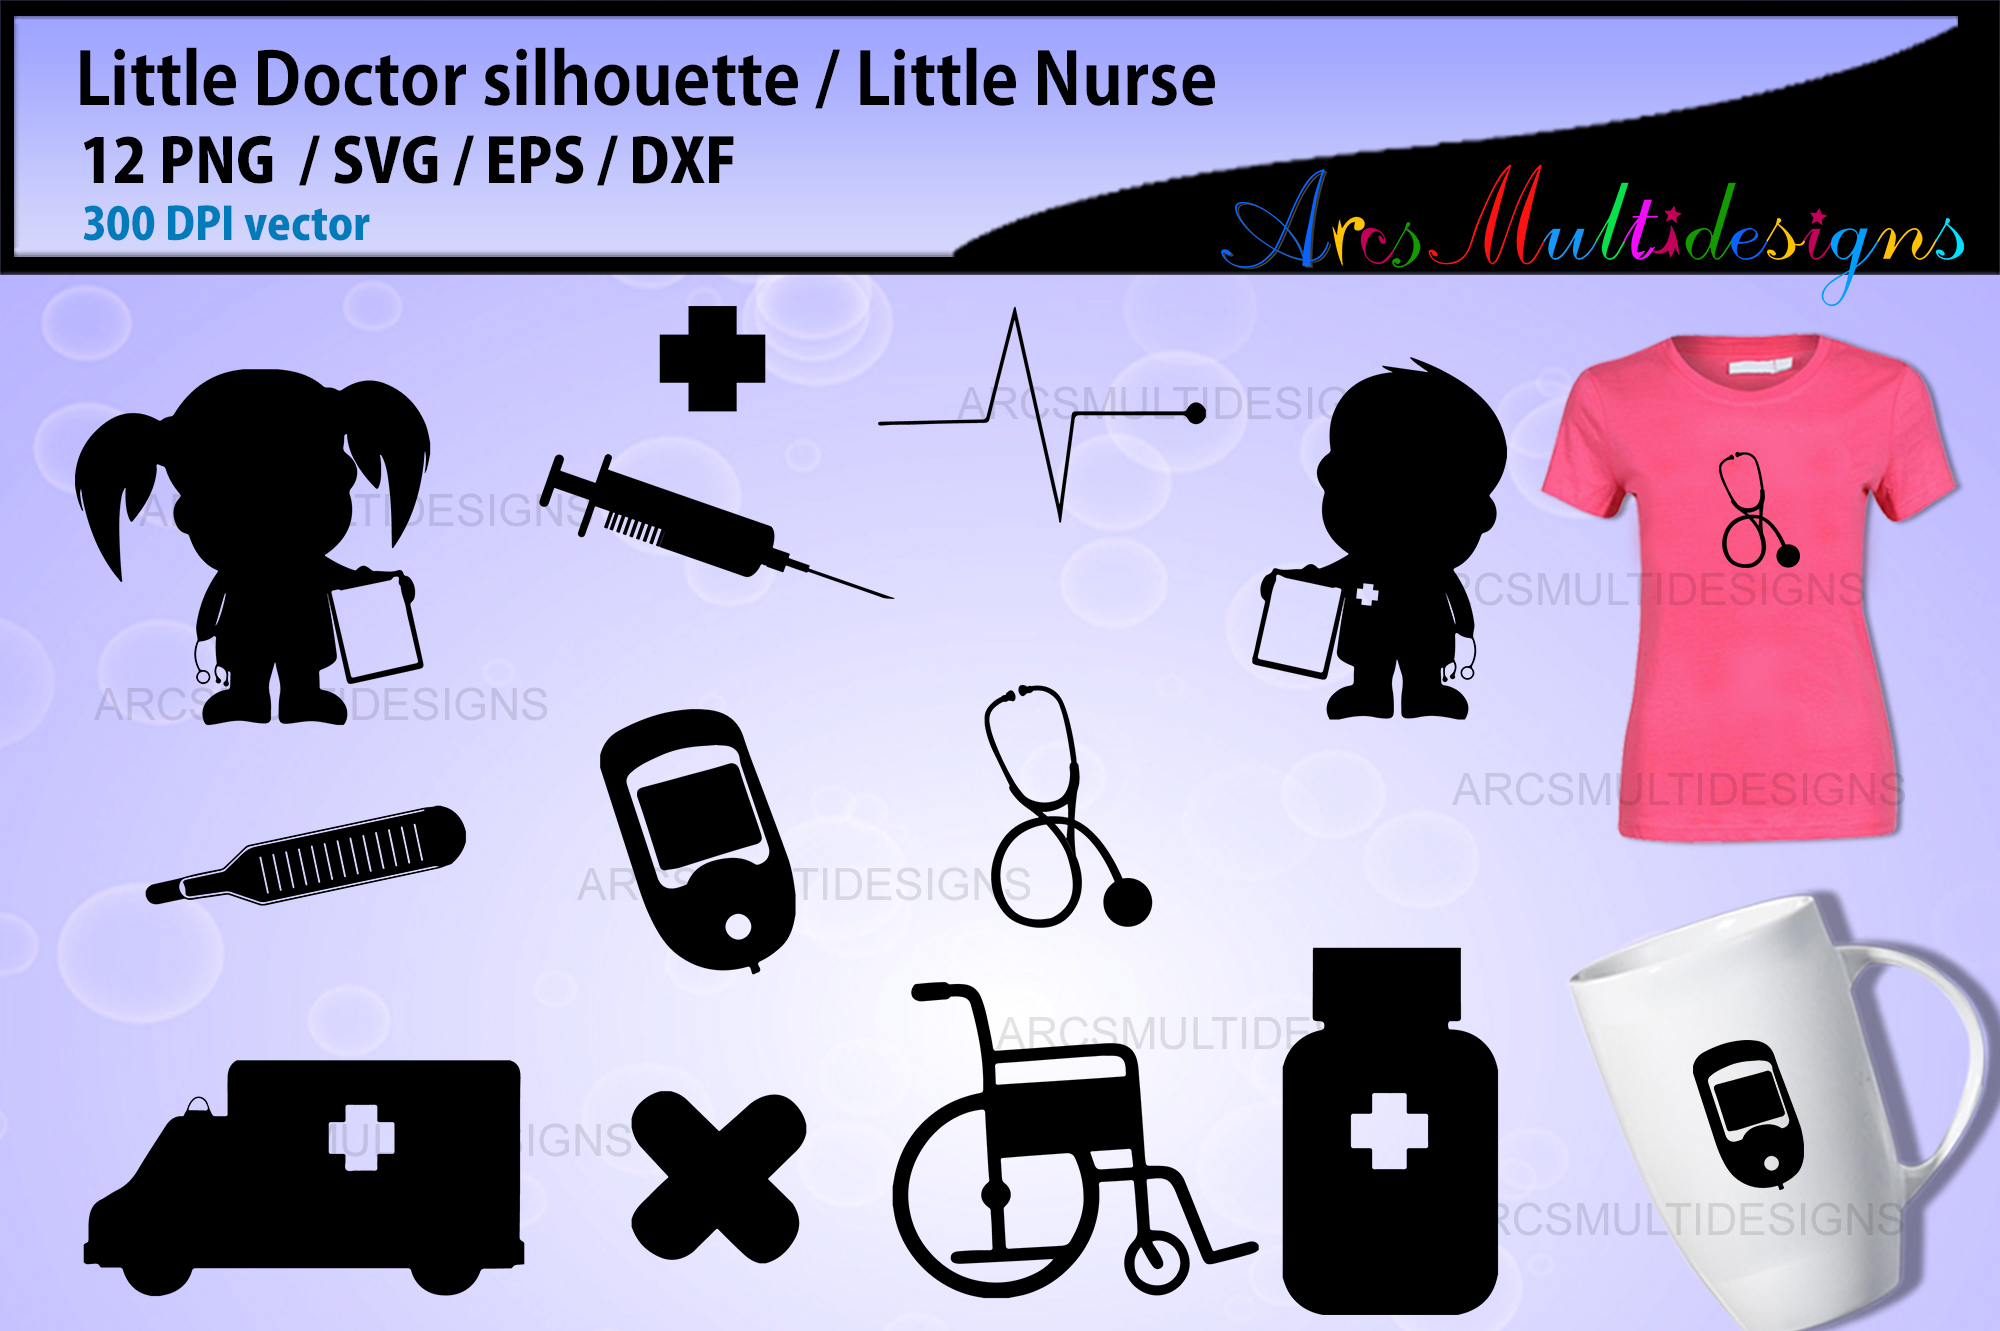 Little Nurse And Doctor Elements Graphic By Arcs Multidesigns